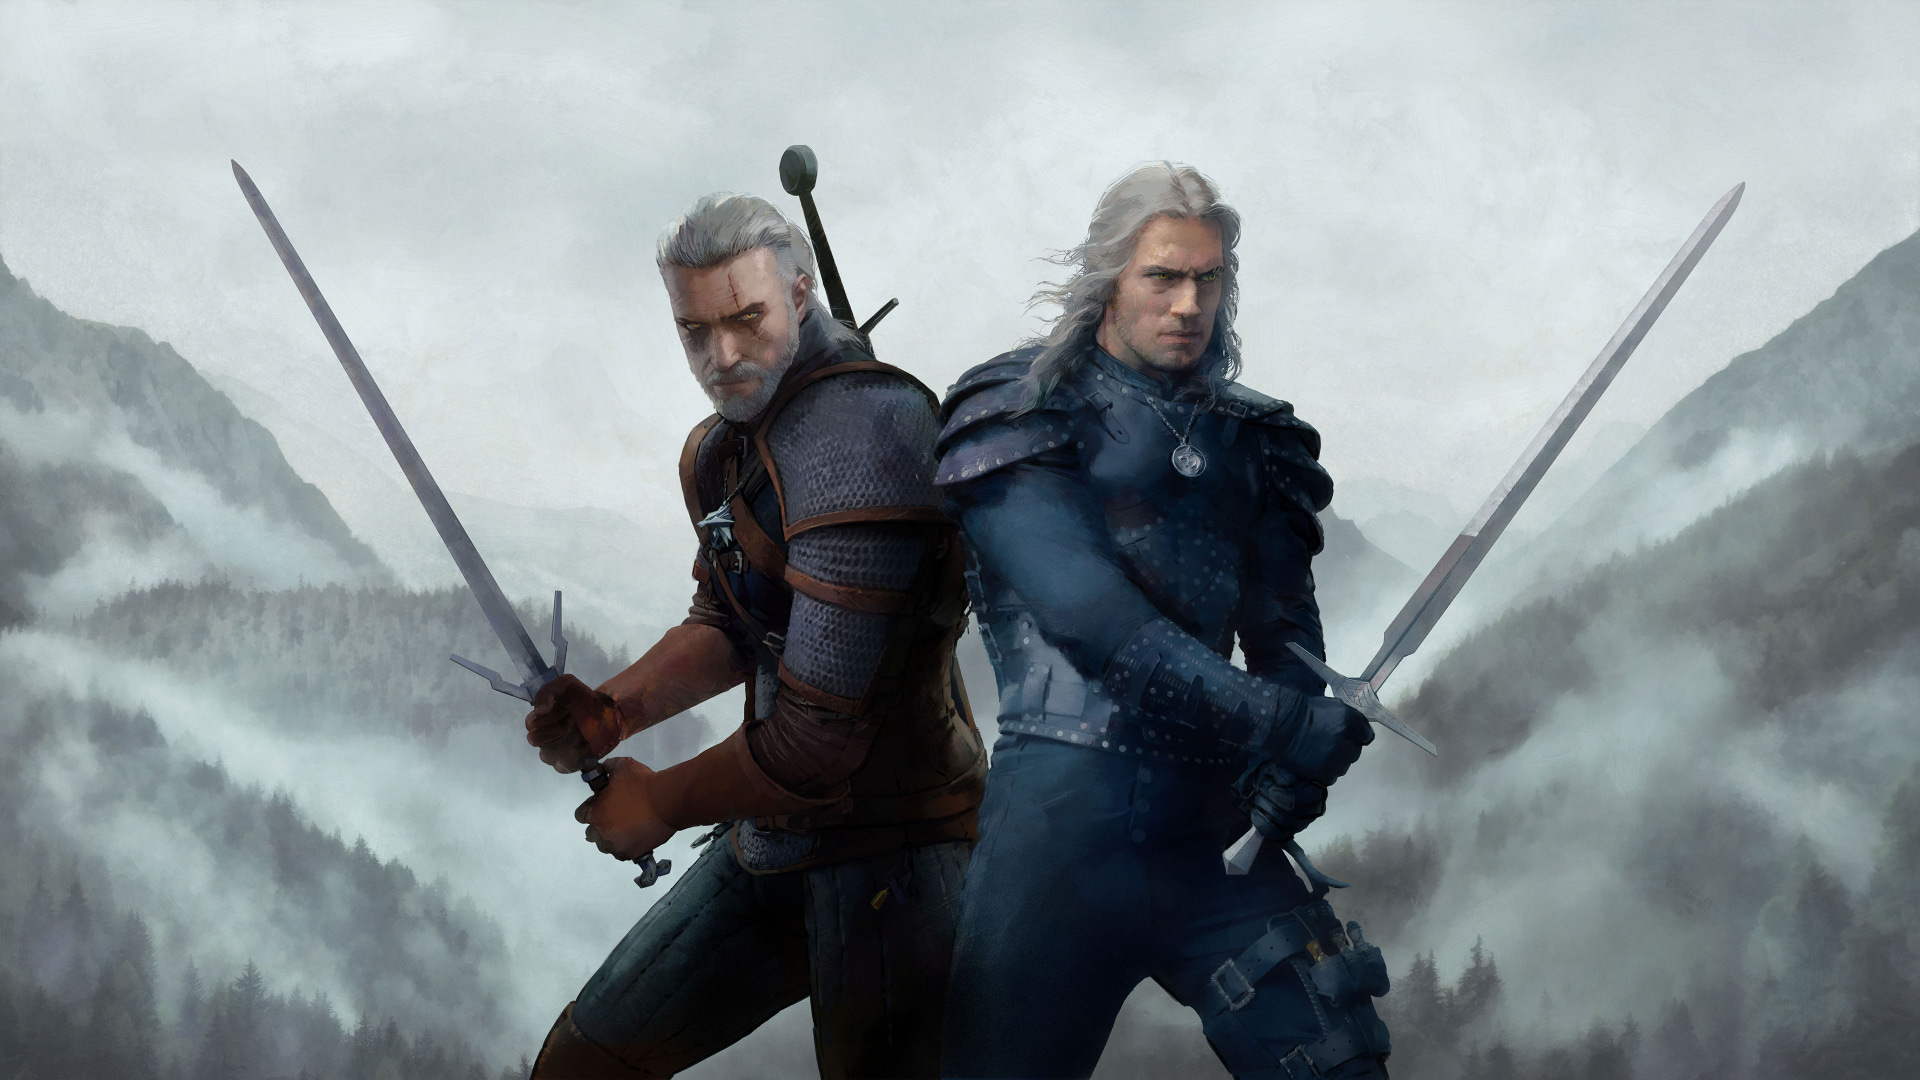 WitcherCon: So you can see the streaming event